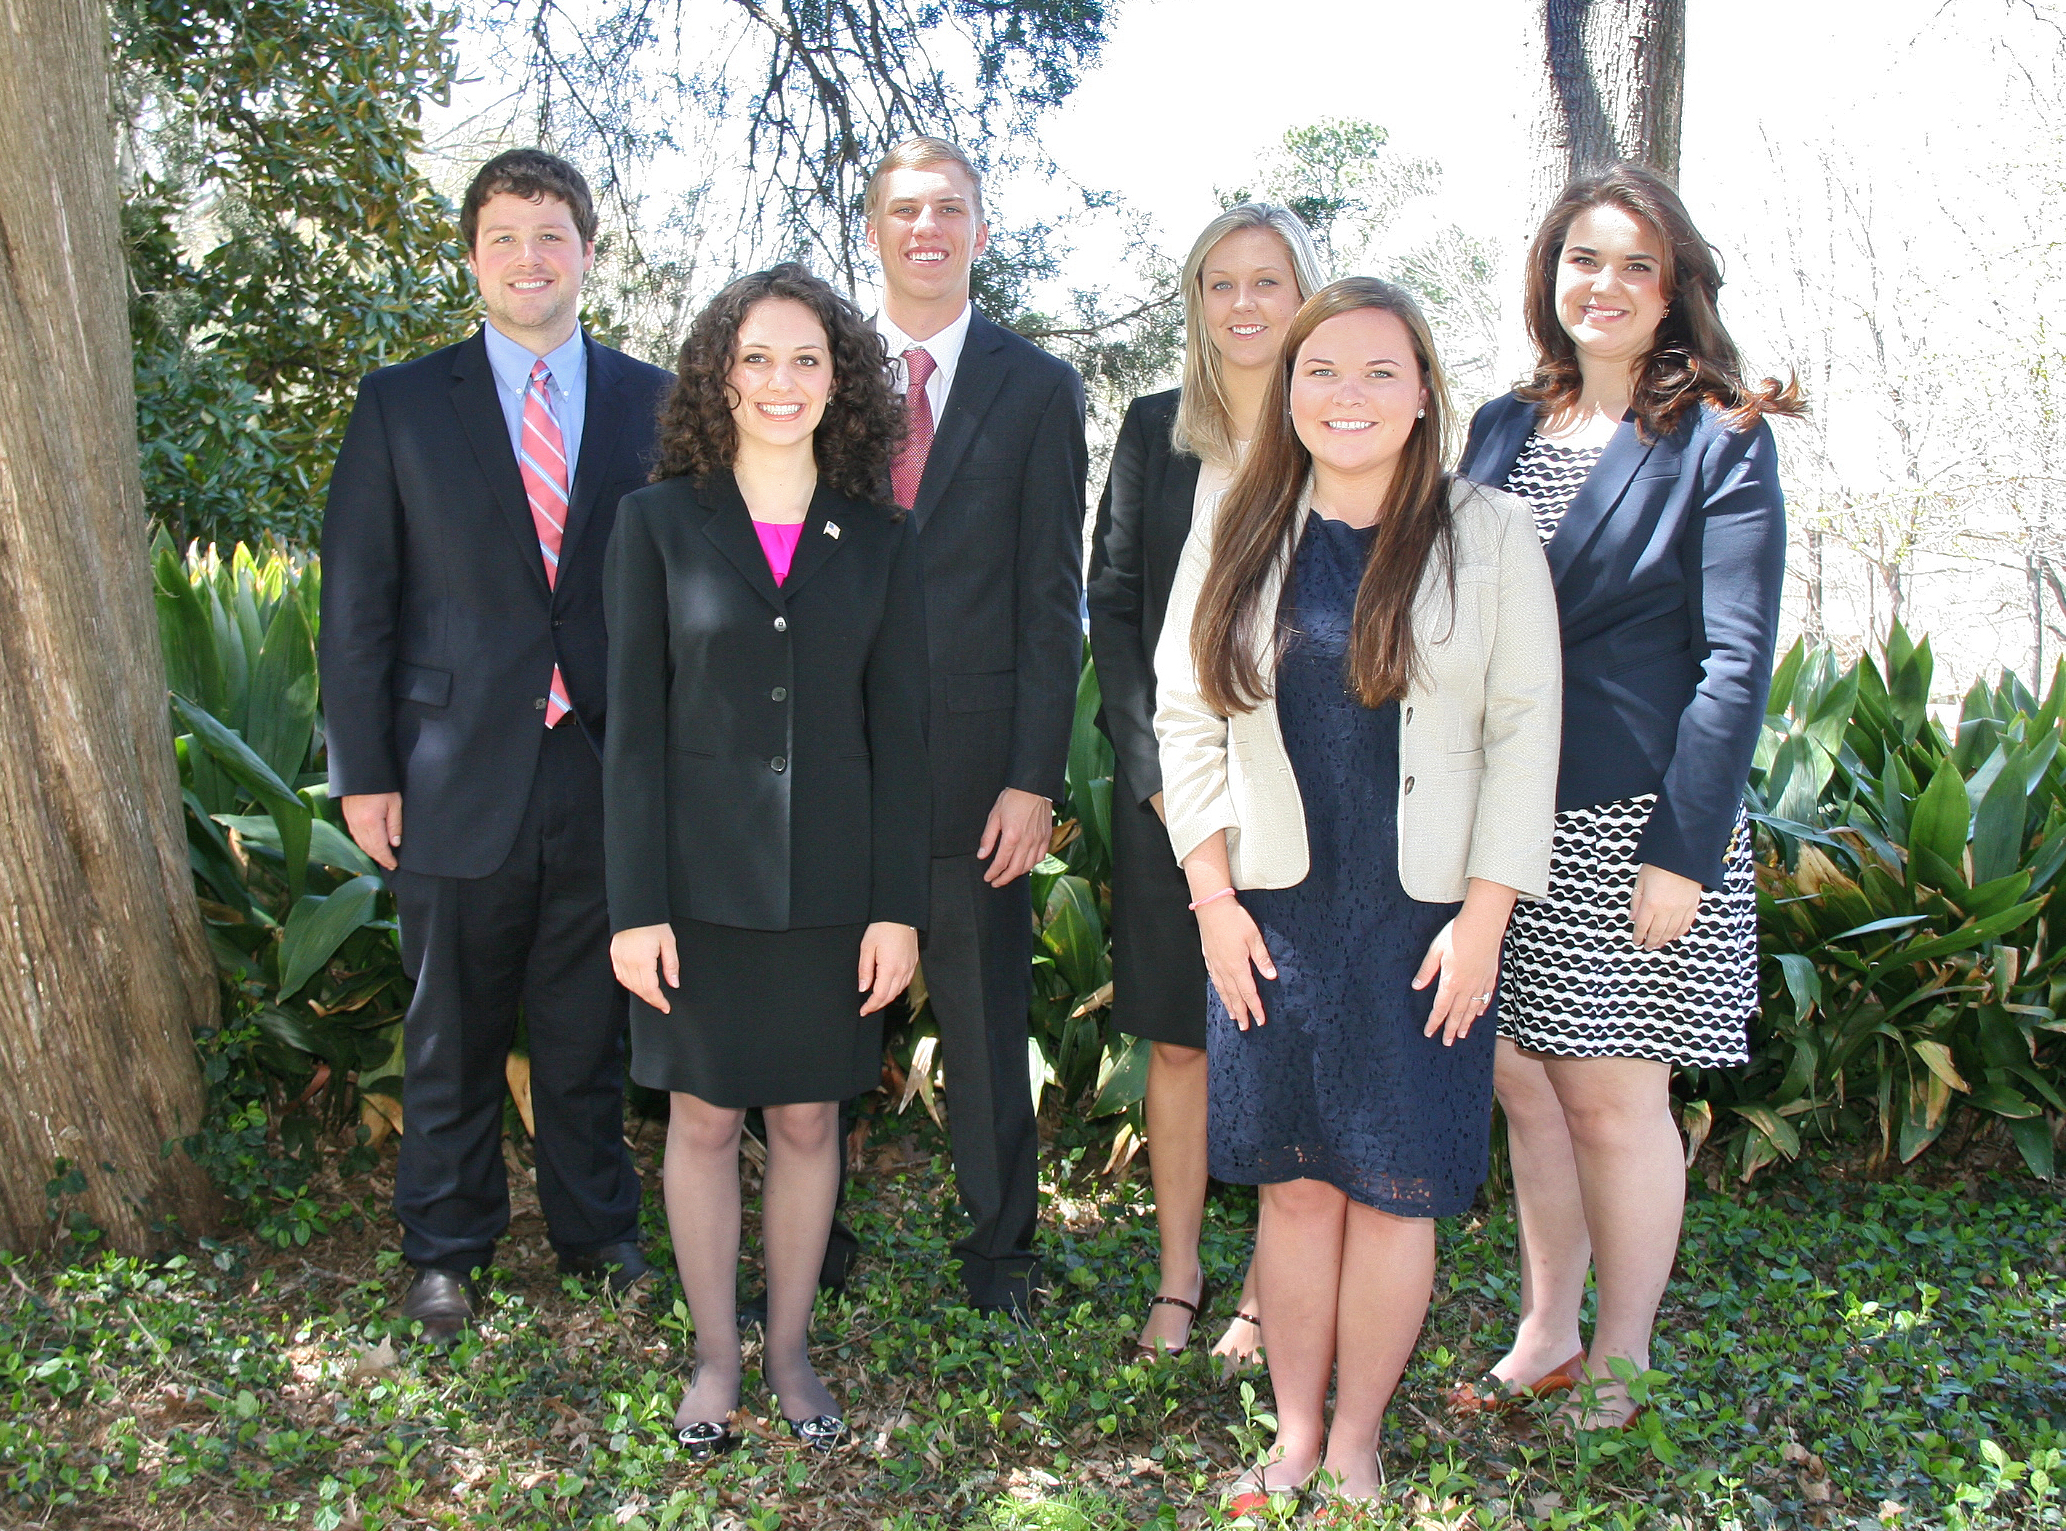 UGA CAES students, from left; back, J. Thomas Golden, Michael Thompson, Sarah Brown, Tess Hammock and, front, Sarah Carnes and Mary Cromley will serve as UGA's Congressional Agriculture Fellows this summer.  Once in Washington D.C., the students will attend agricultural committee hearings and conduct agricultural-related research, all while earning credit hours towards graduation.